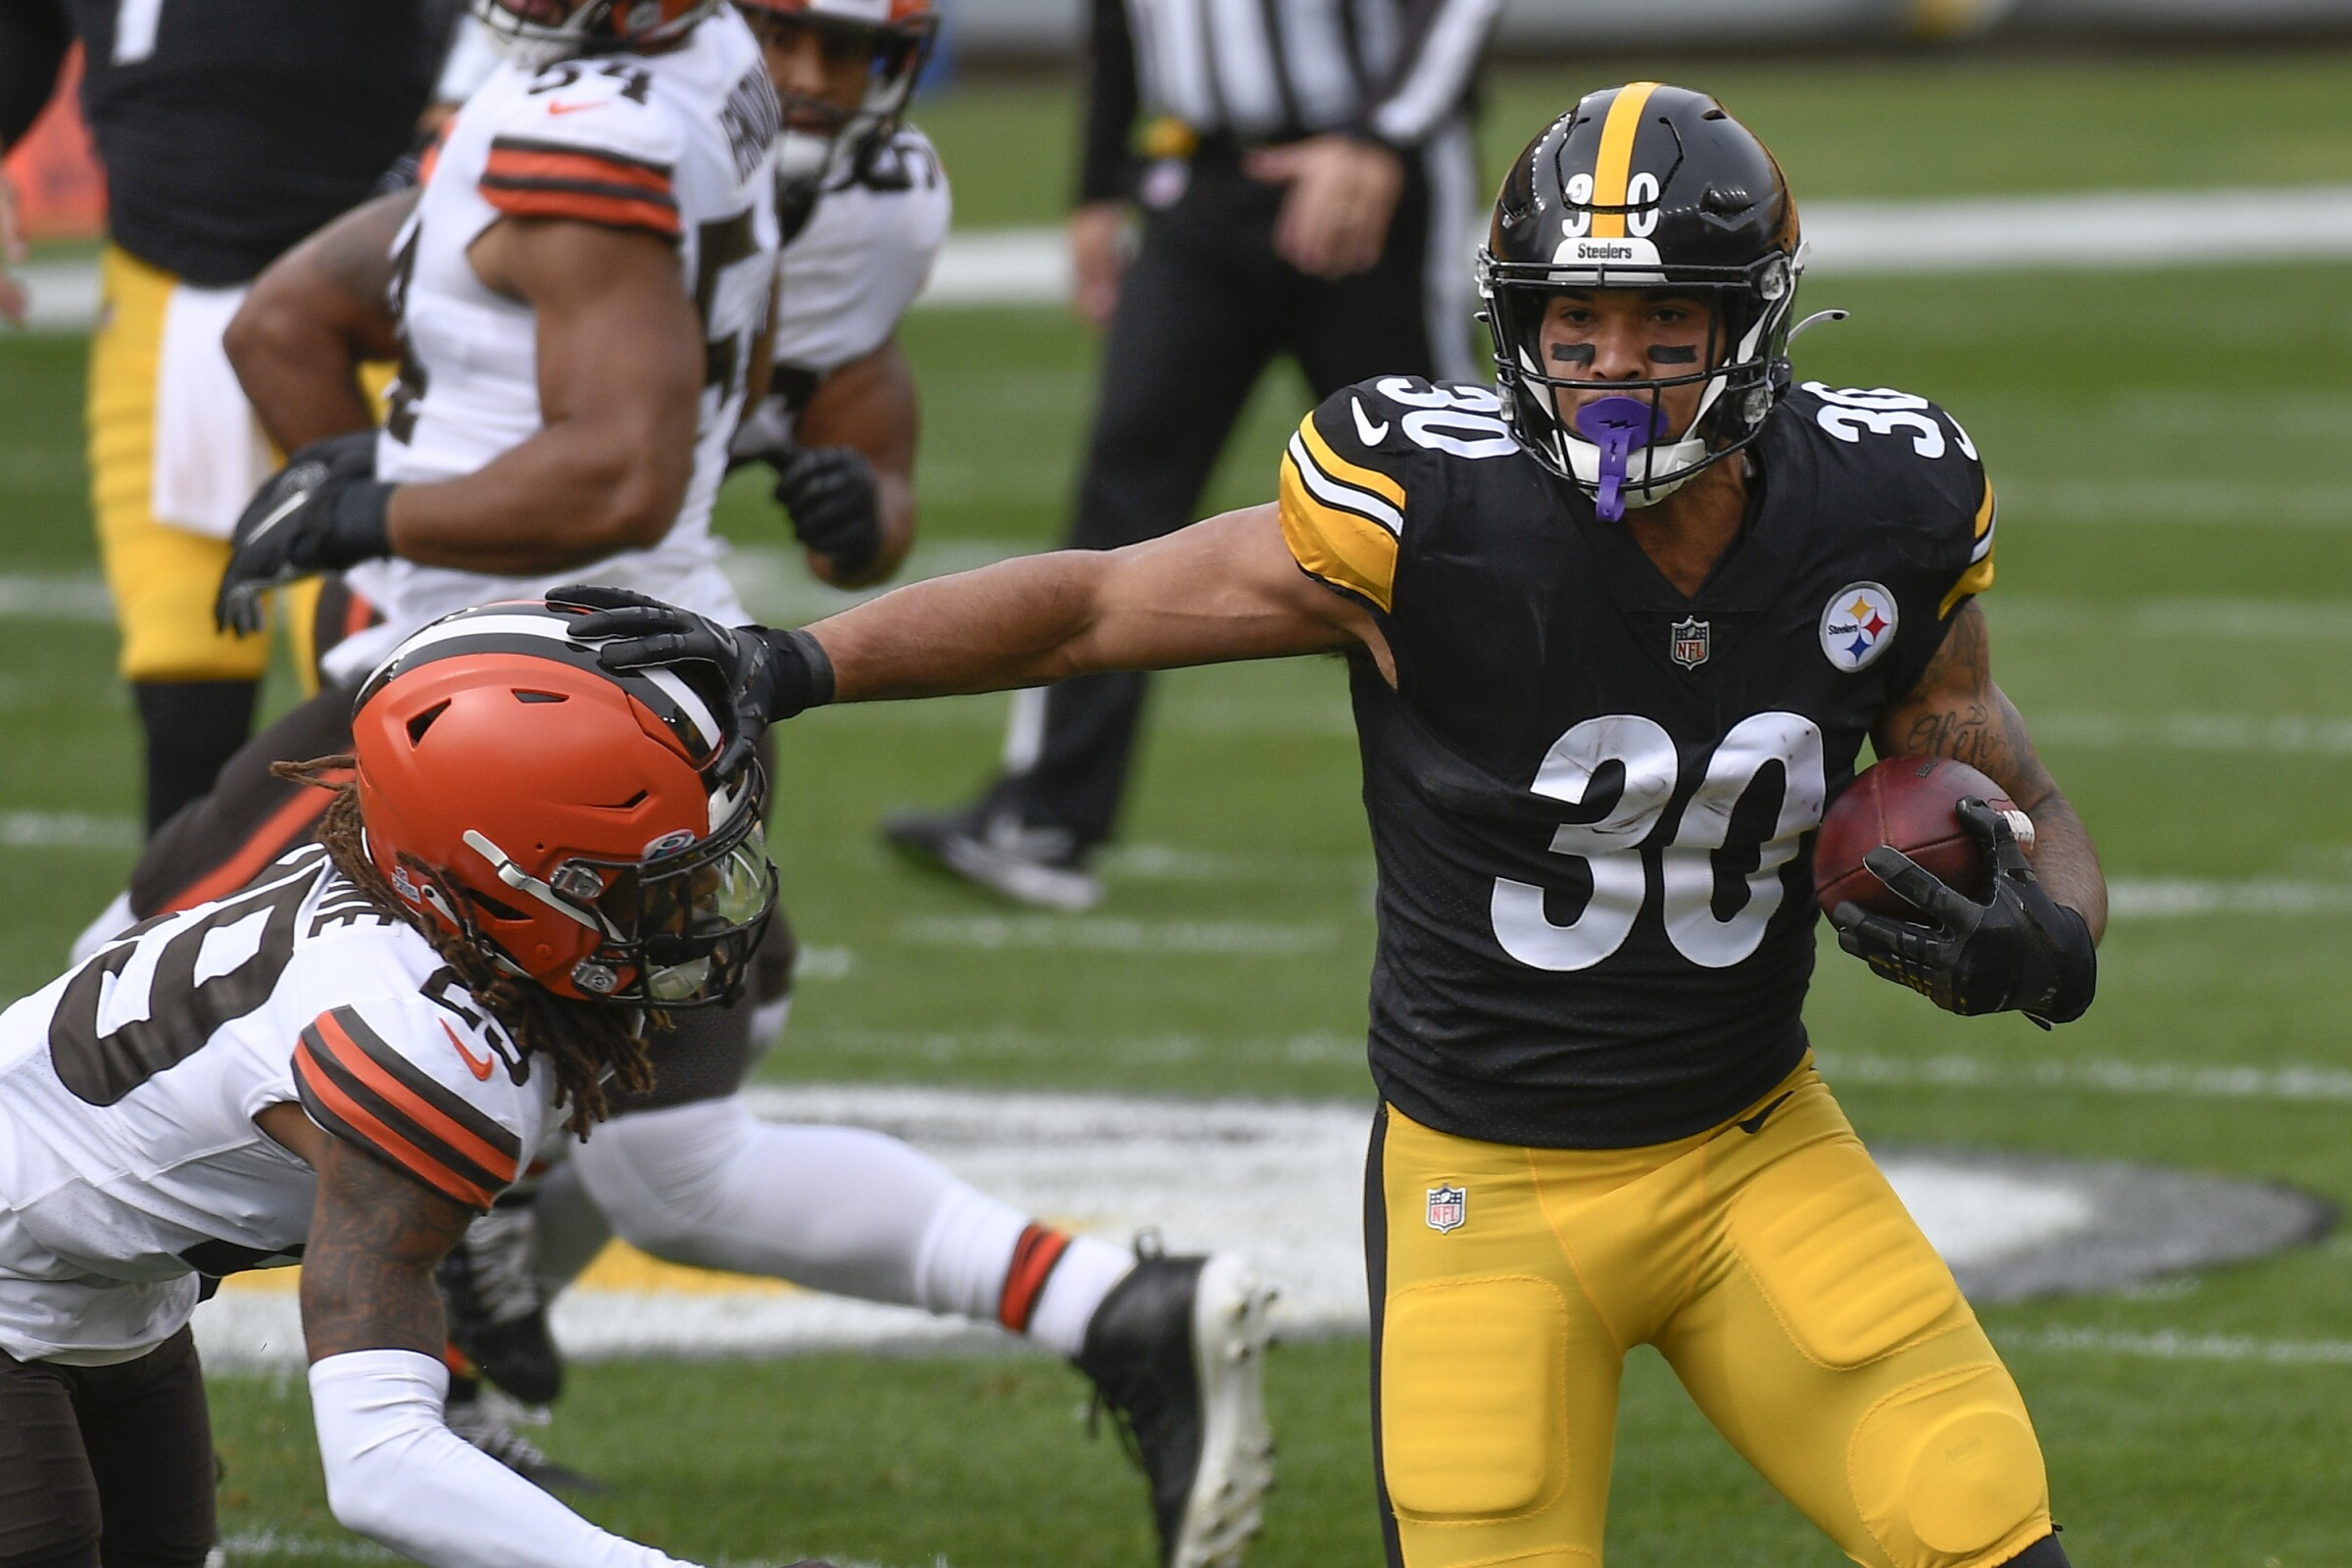 Pittsburgh Steelers running back James Conner runs past Cleveland Browns safety Sheldrick Redwine.